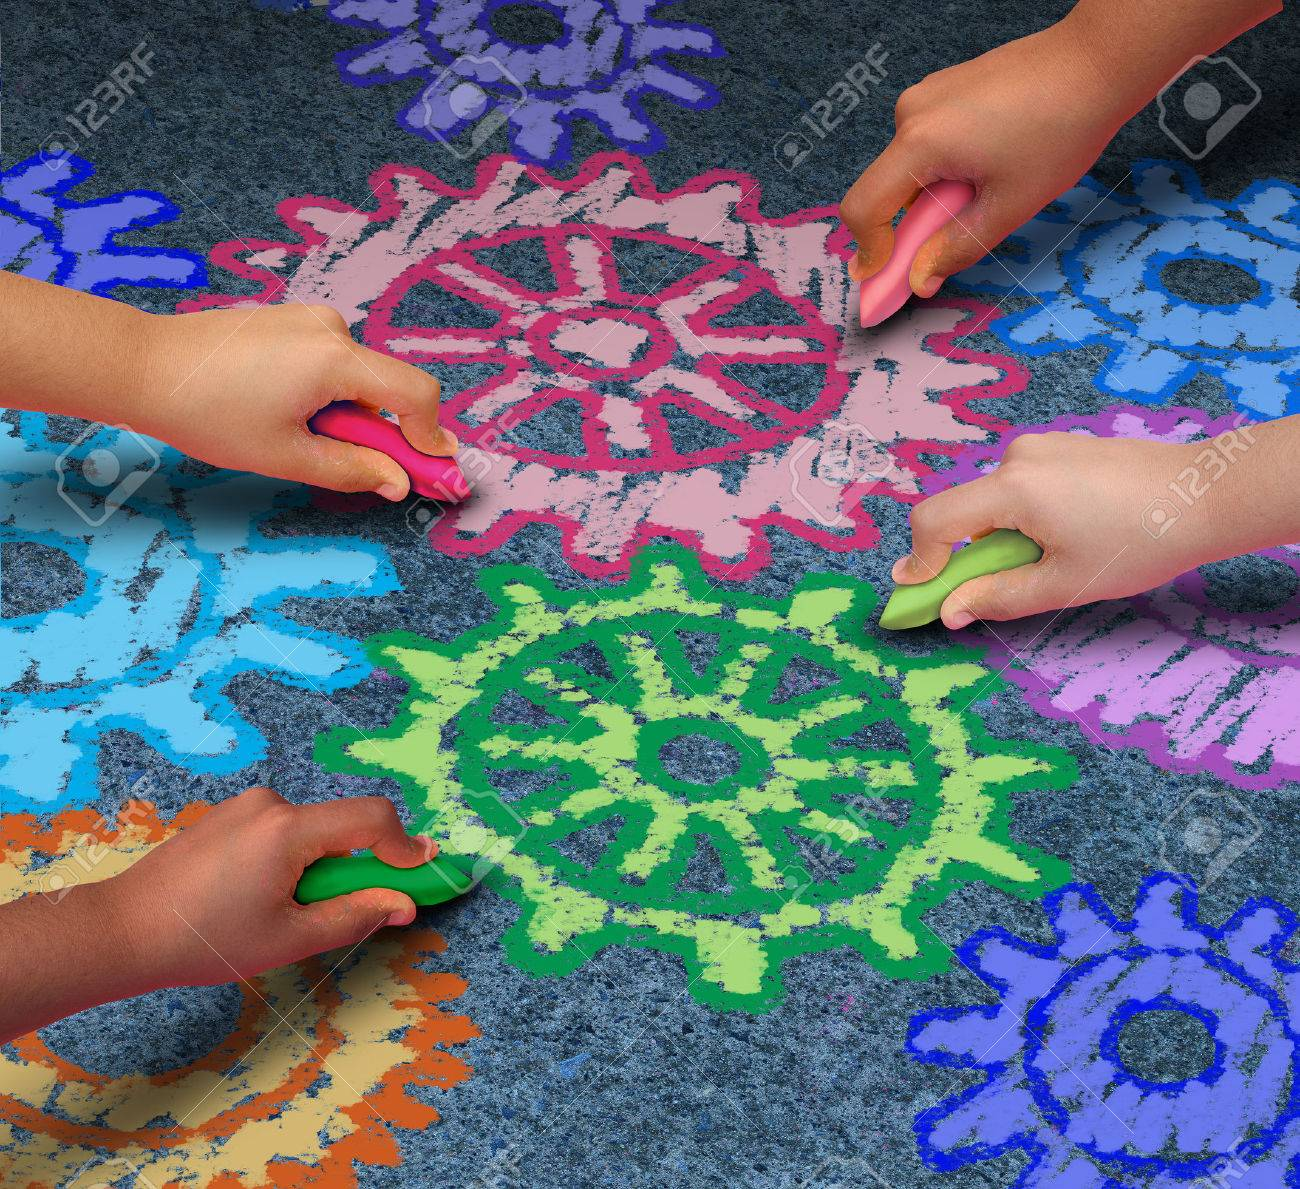 Education concept as a diverse community of children working together in friendship drawing connected gears and cog wheels with chalk as a symbol for the success of learning with a school program. Stock Photo - 41506649